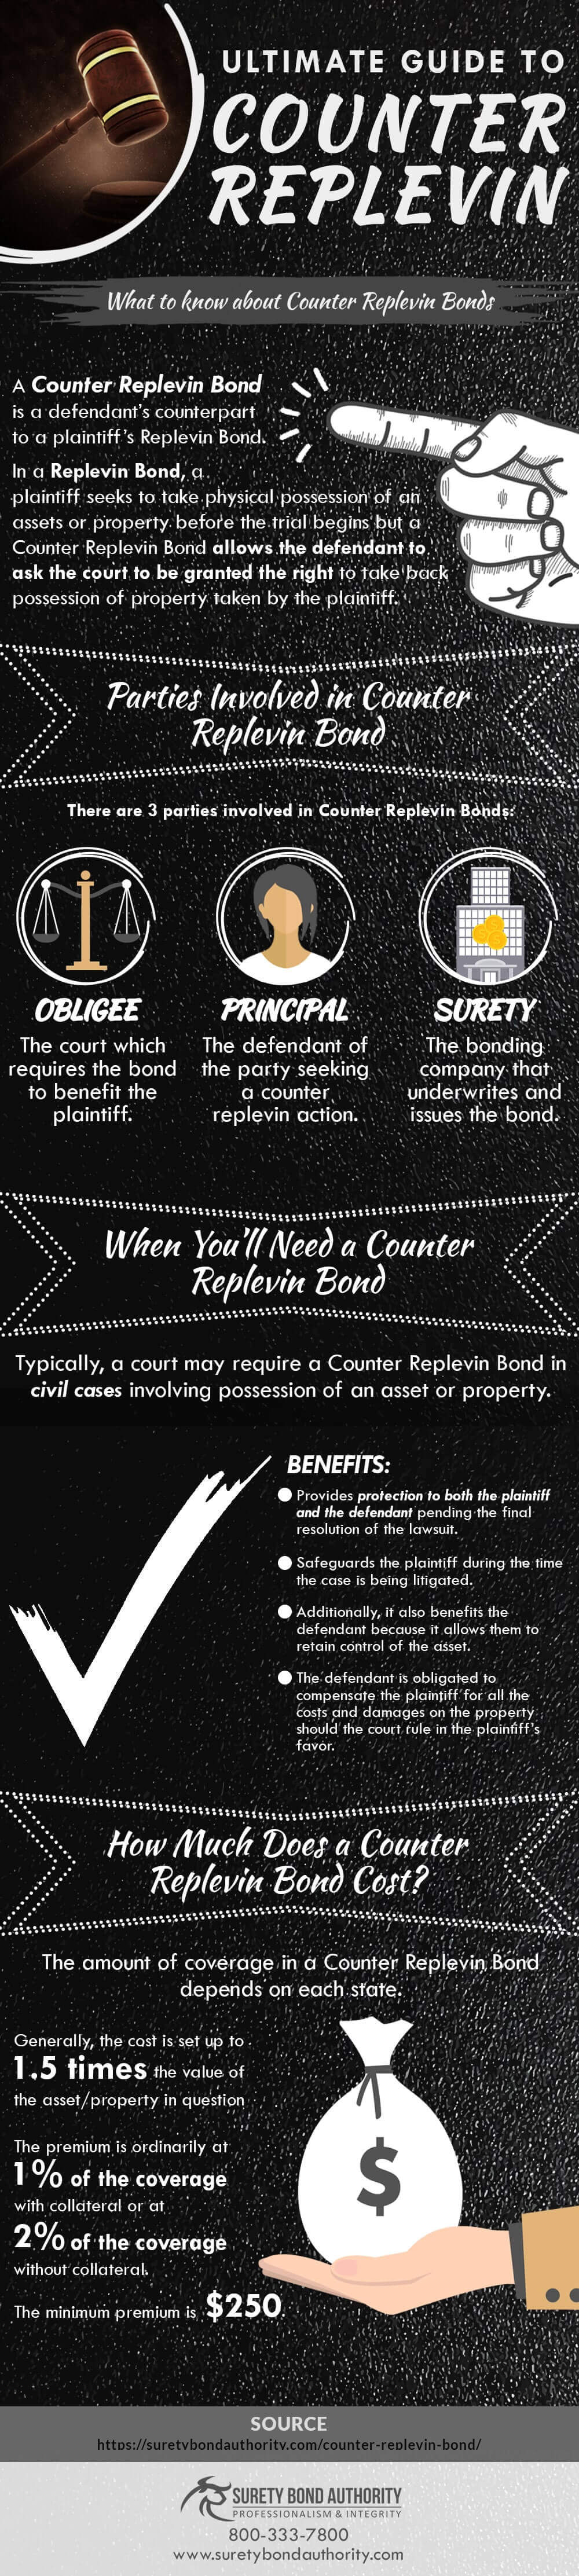 Counter Replevin Bonds Infographic